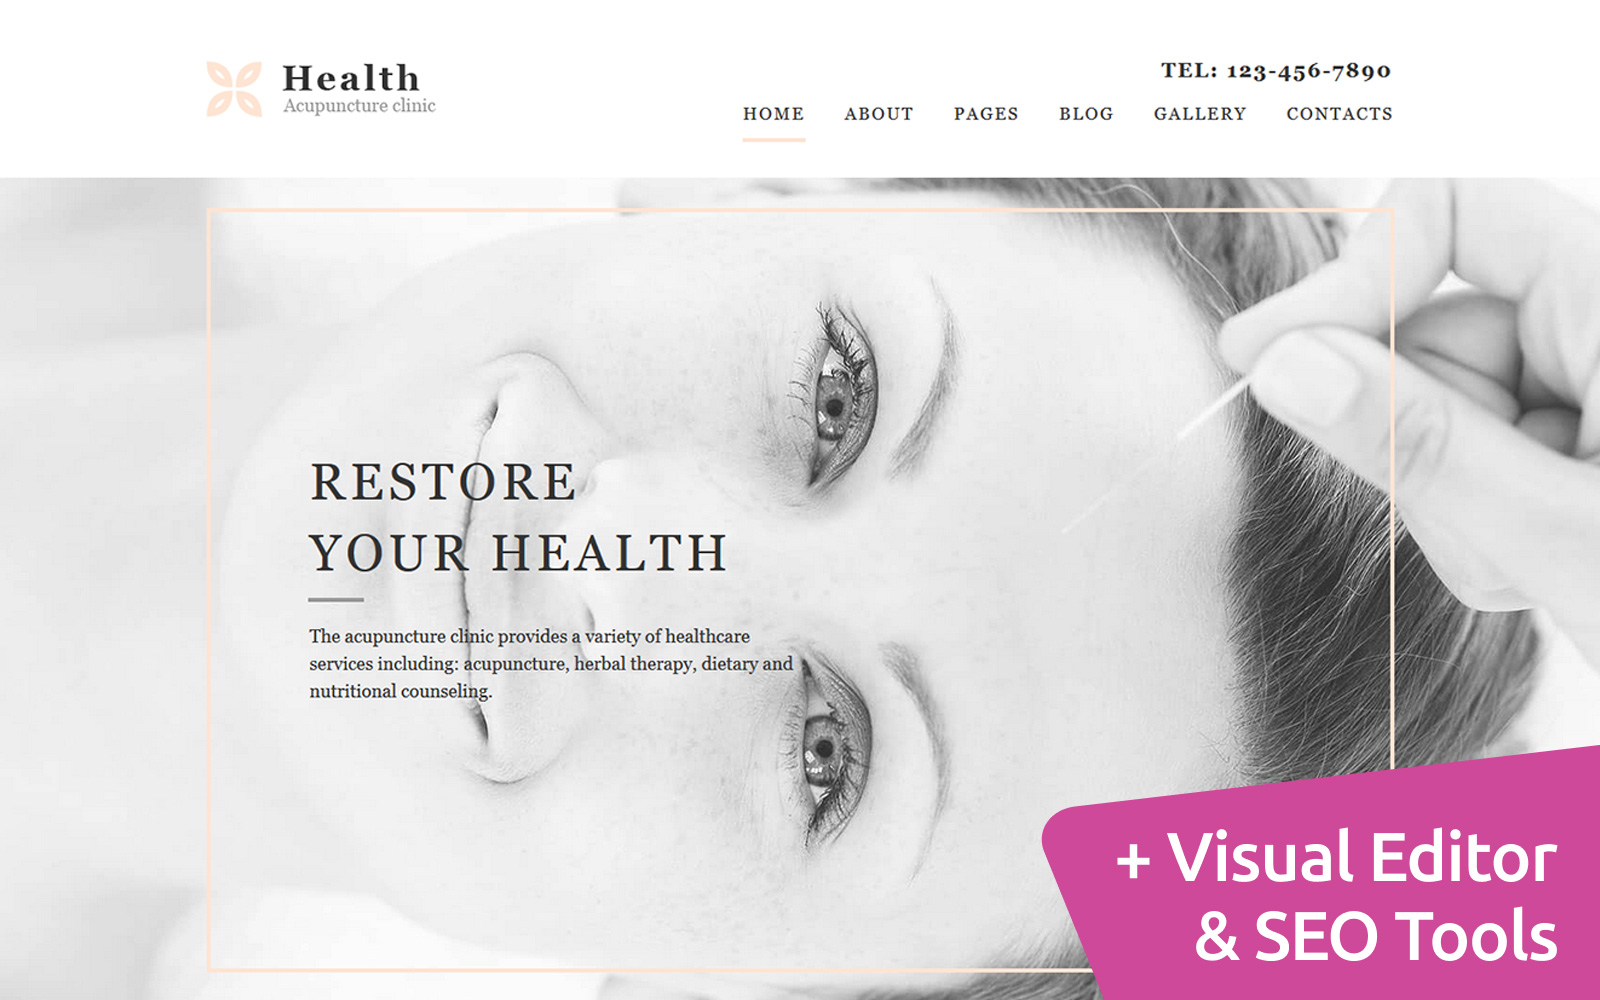 Health - Acupuncture Clinic Moto CMS 3 Template